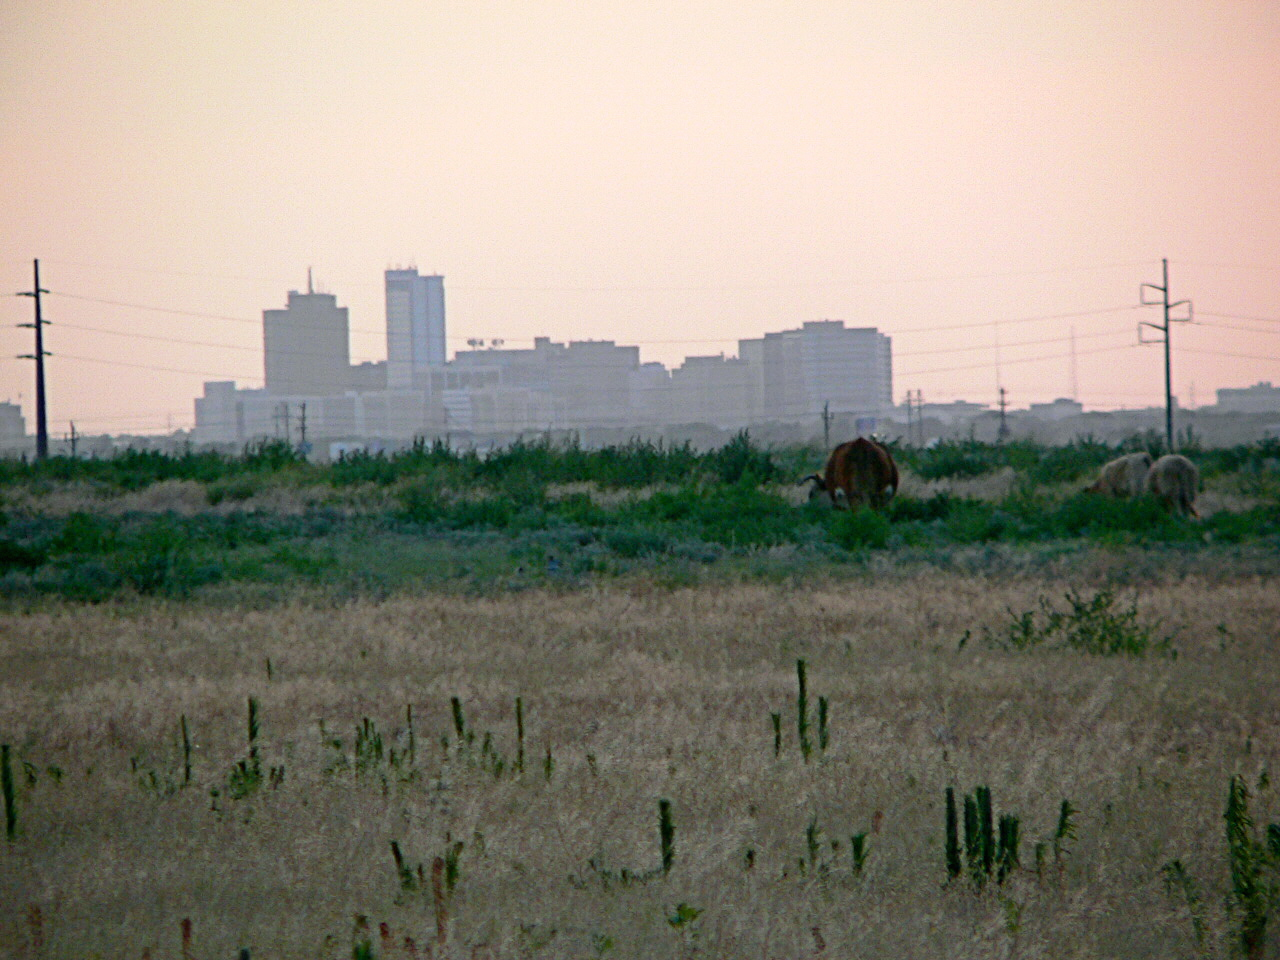 Midland_Texas_by_C4i71yn.jpg